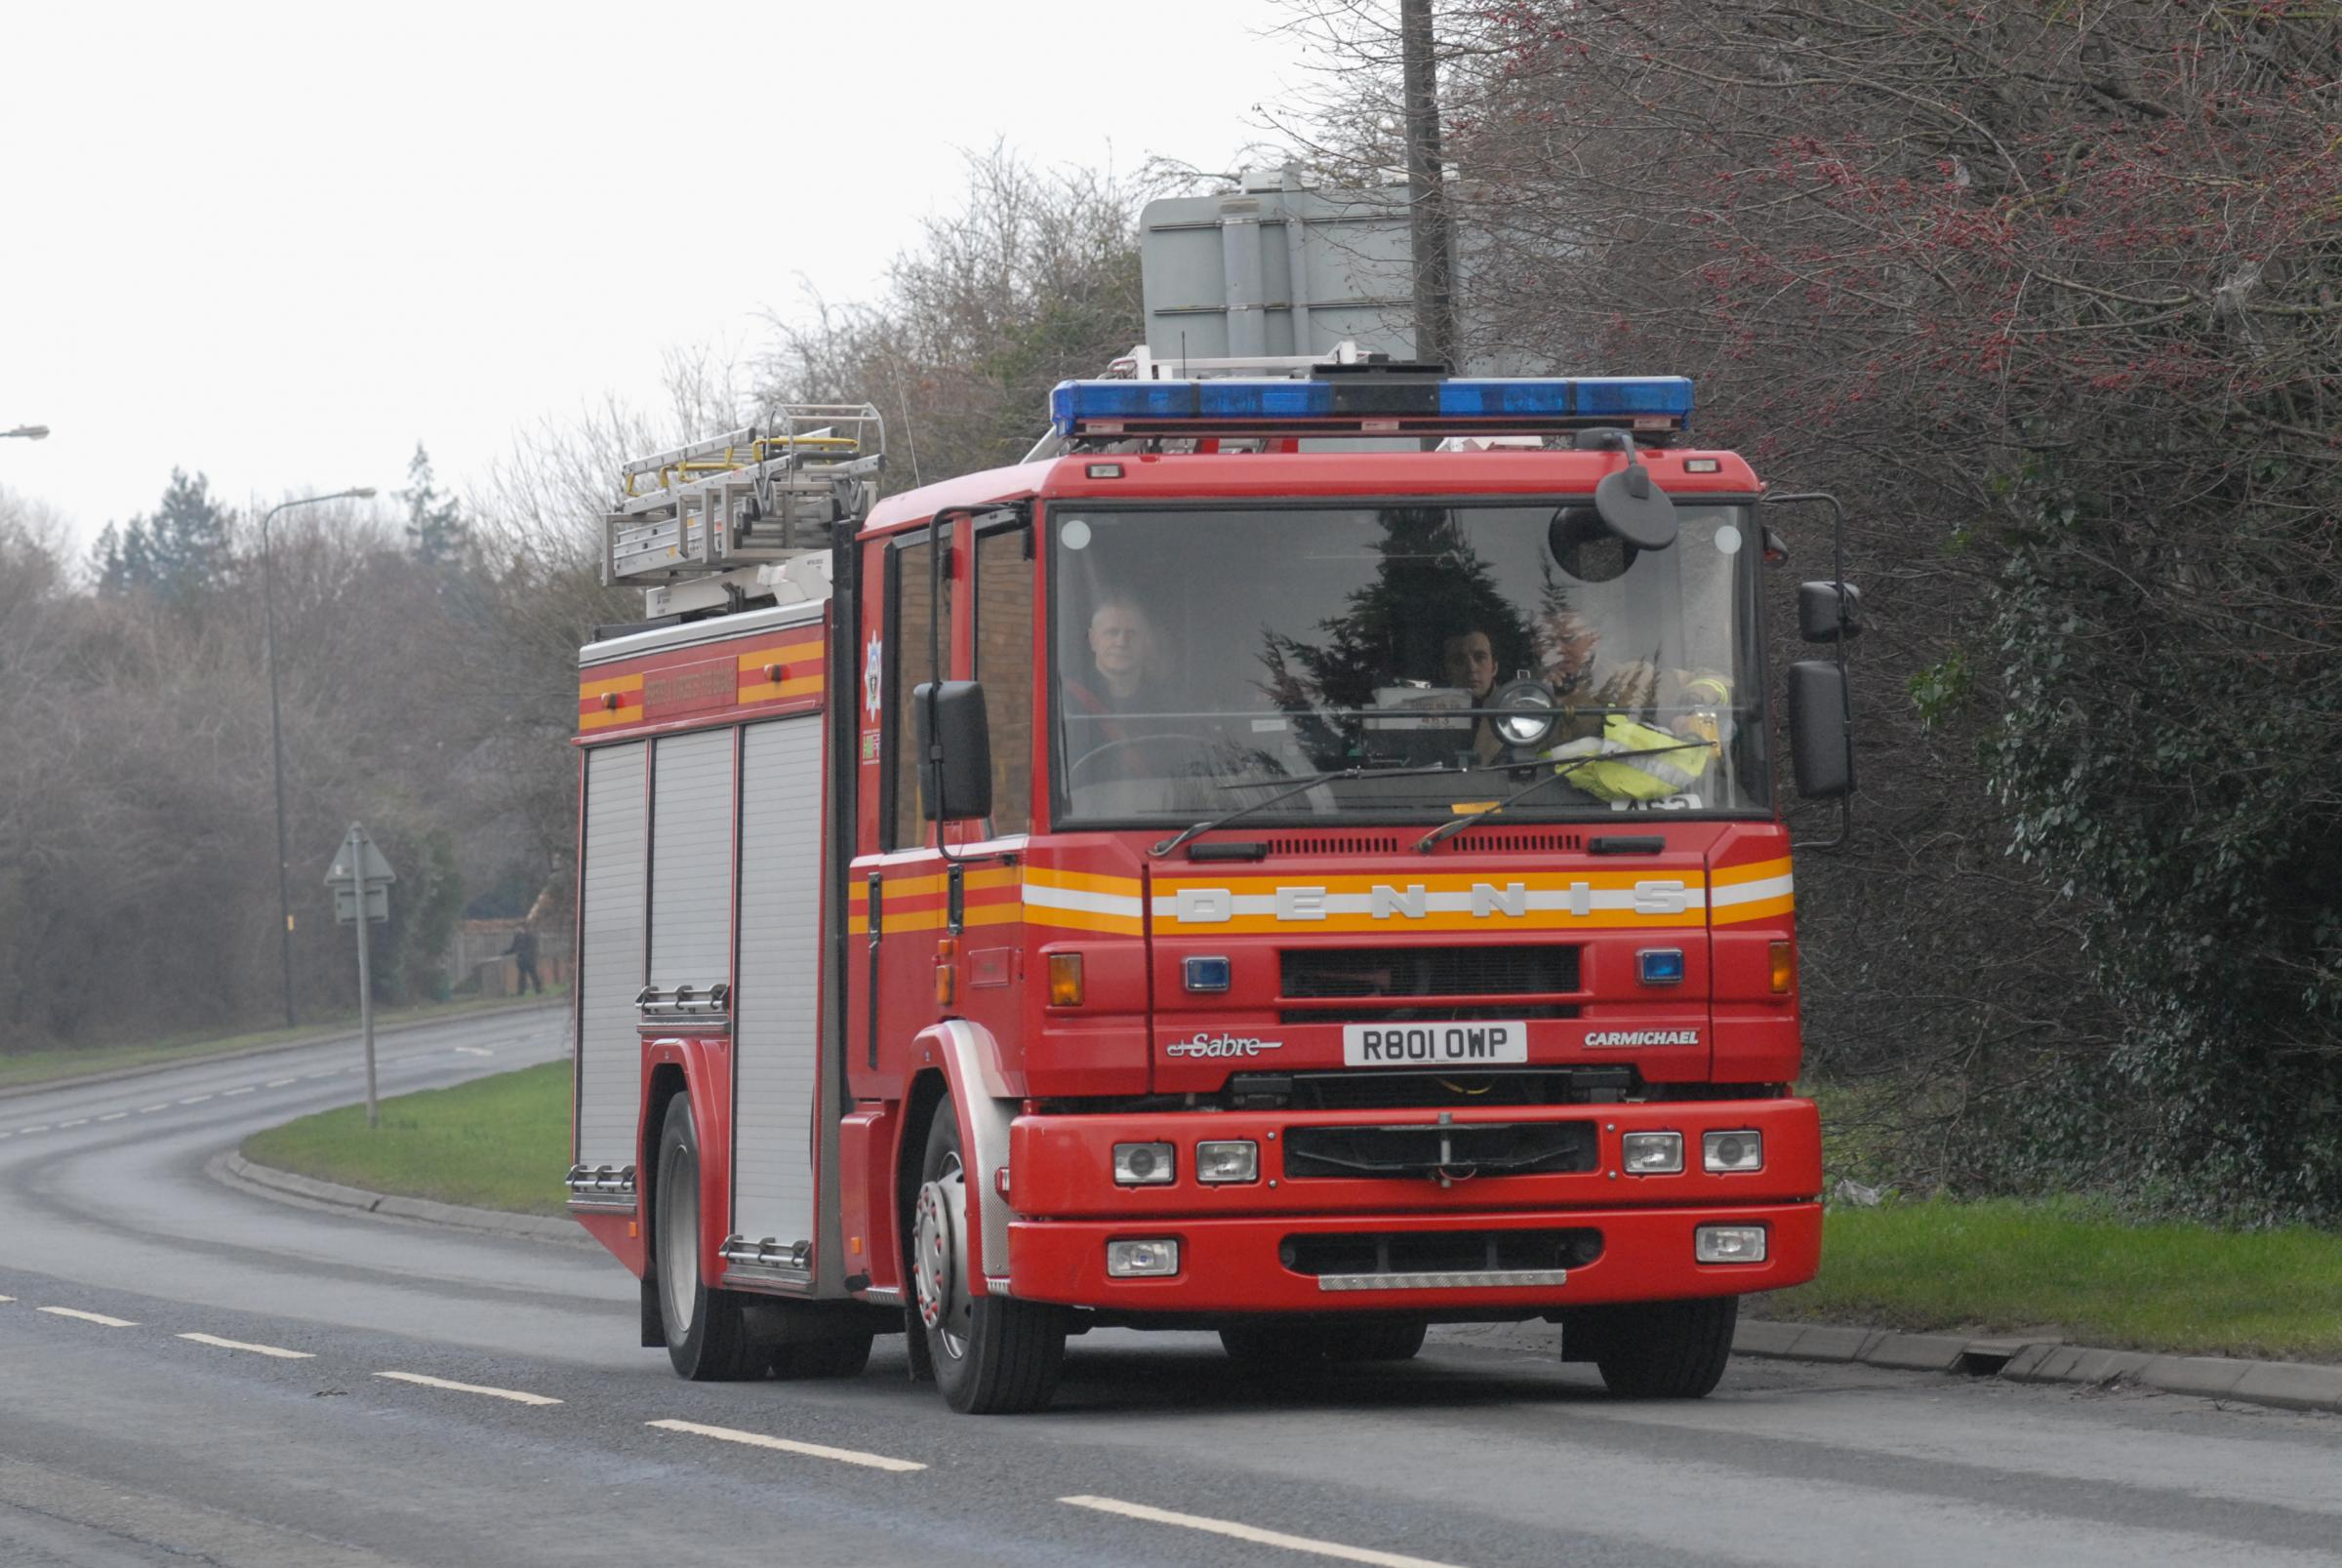 Fire fighters called to kitchen fire in Tillingham last night